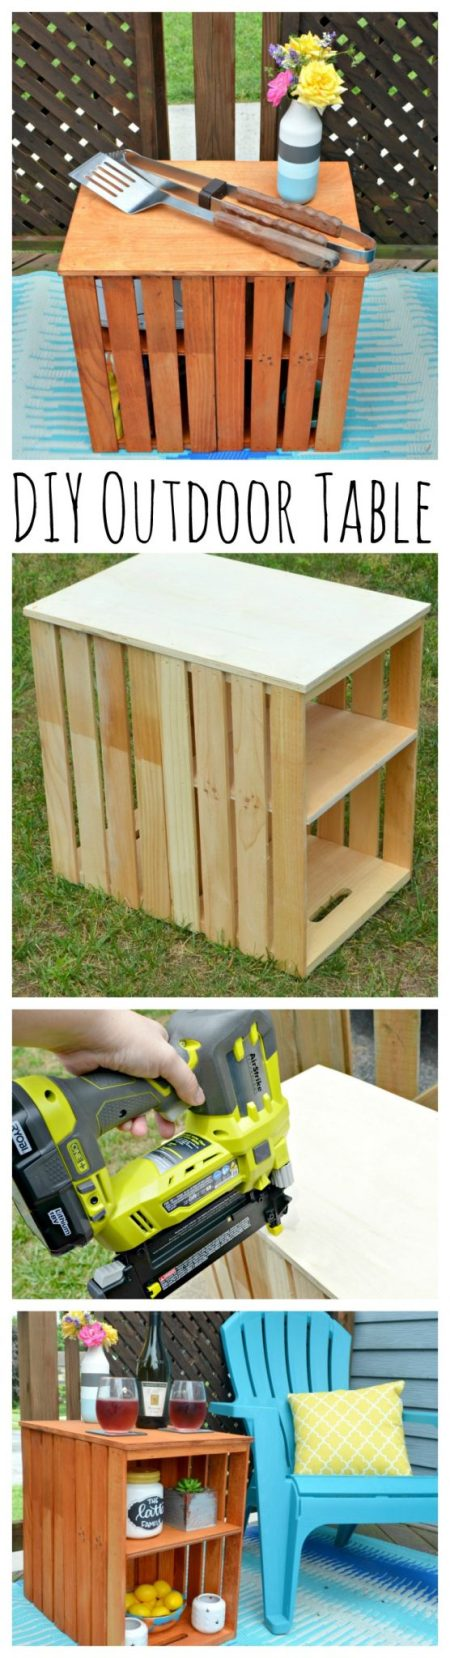 DIY Outdoor Crate Table